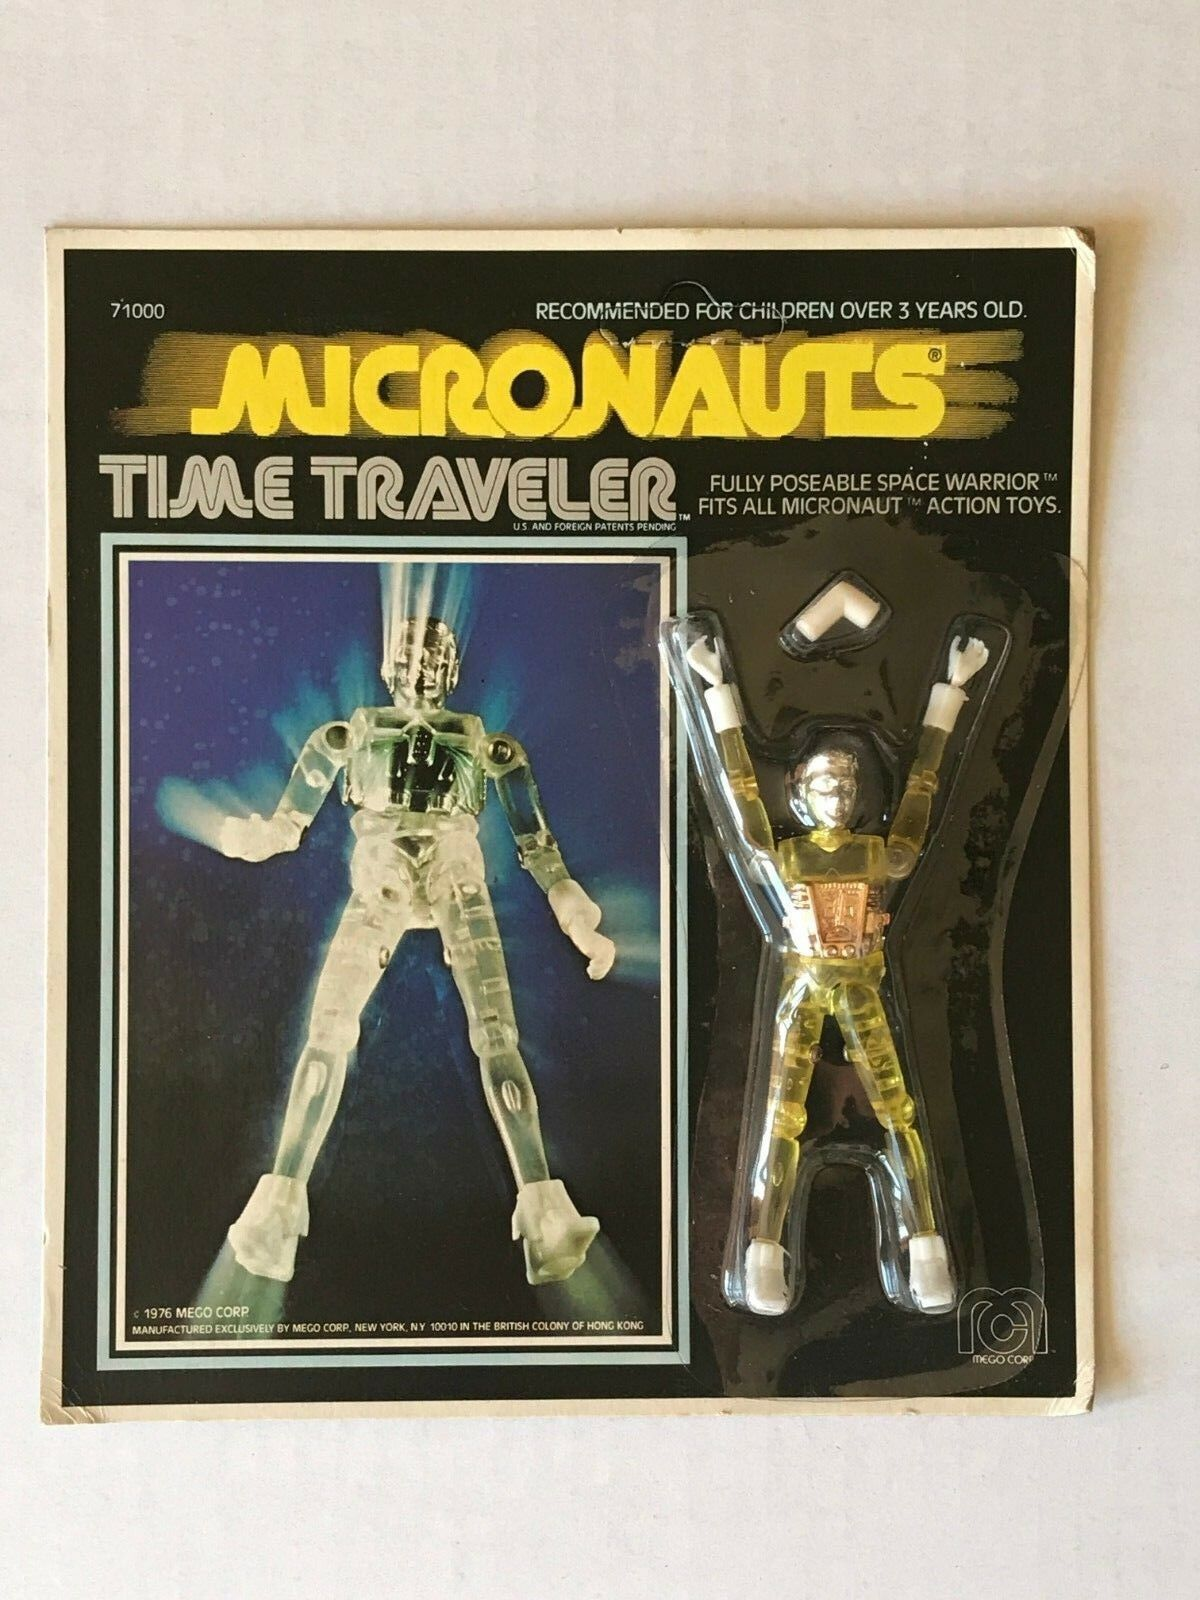 1976 MEGO Micronauts Time Traveler Yellow - Unpunched Card